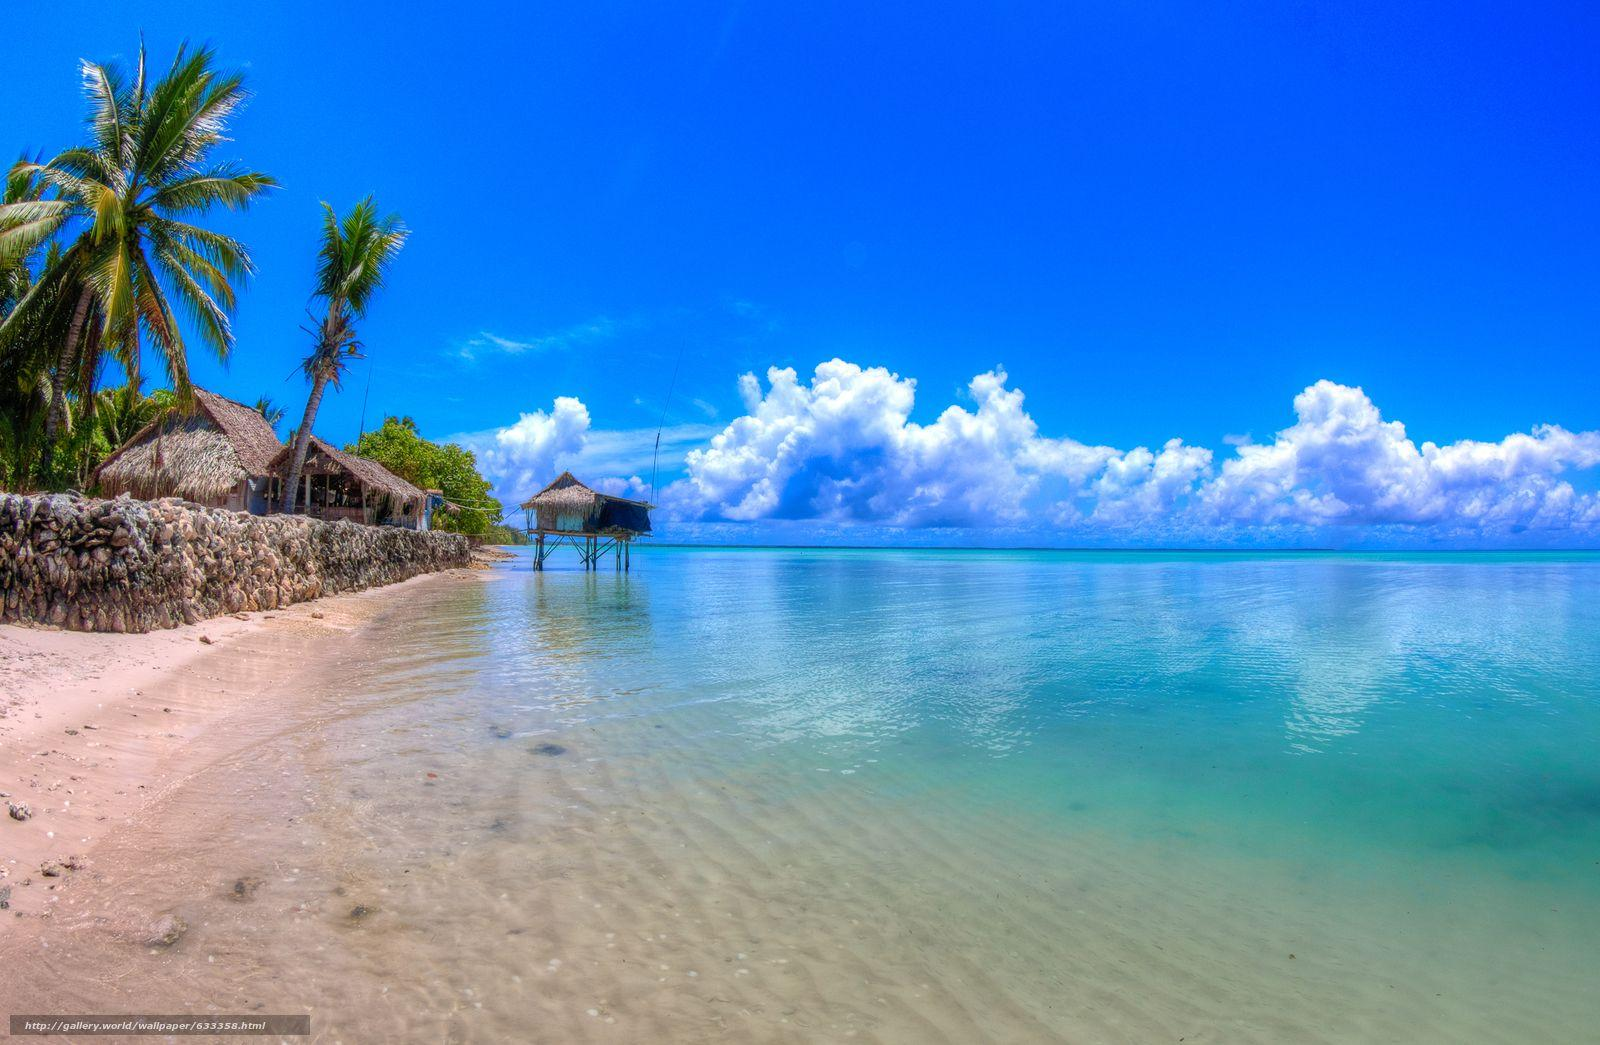 Download wallpaper lagoon, Abaiang, Kiribati- Pacific States ...